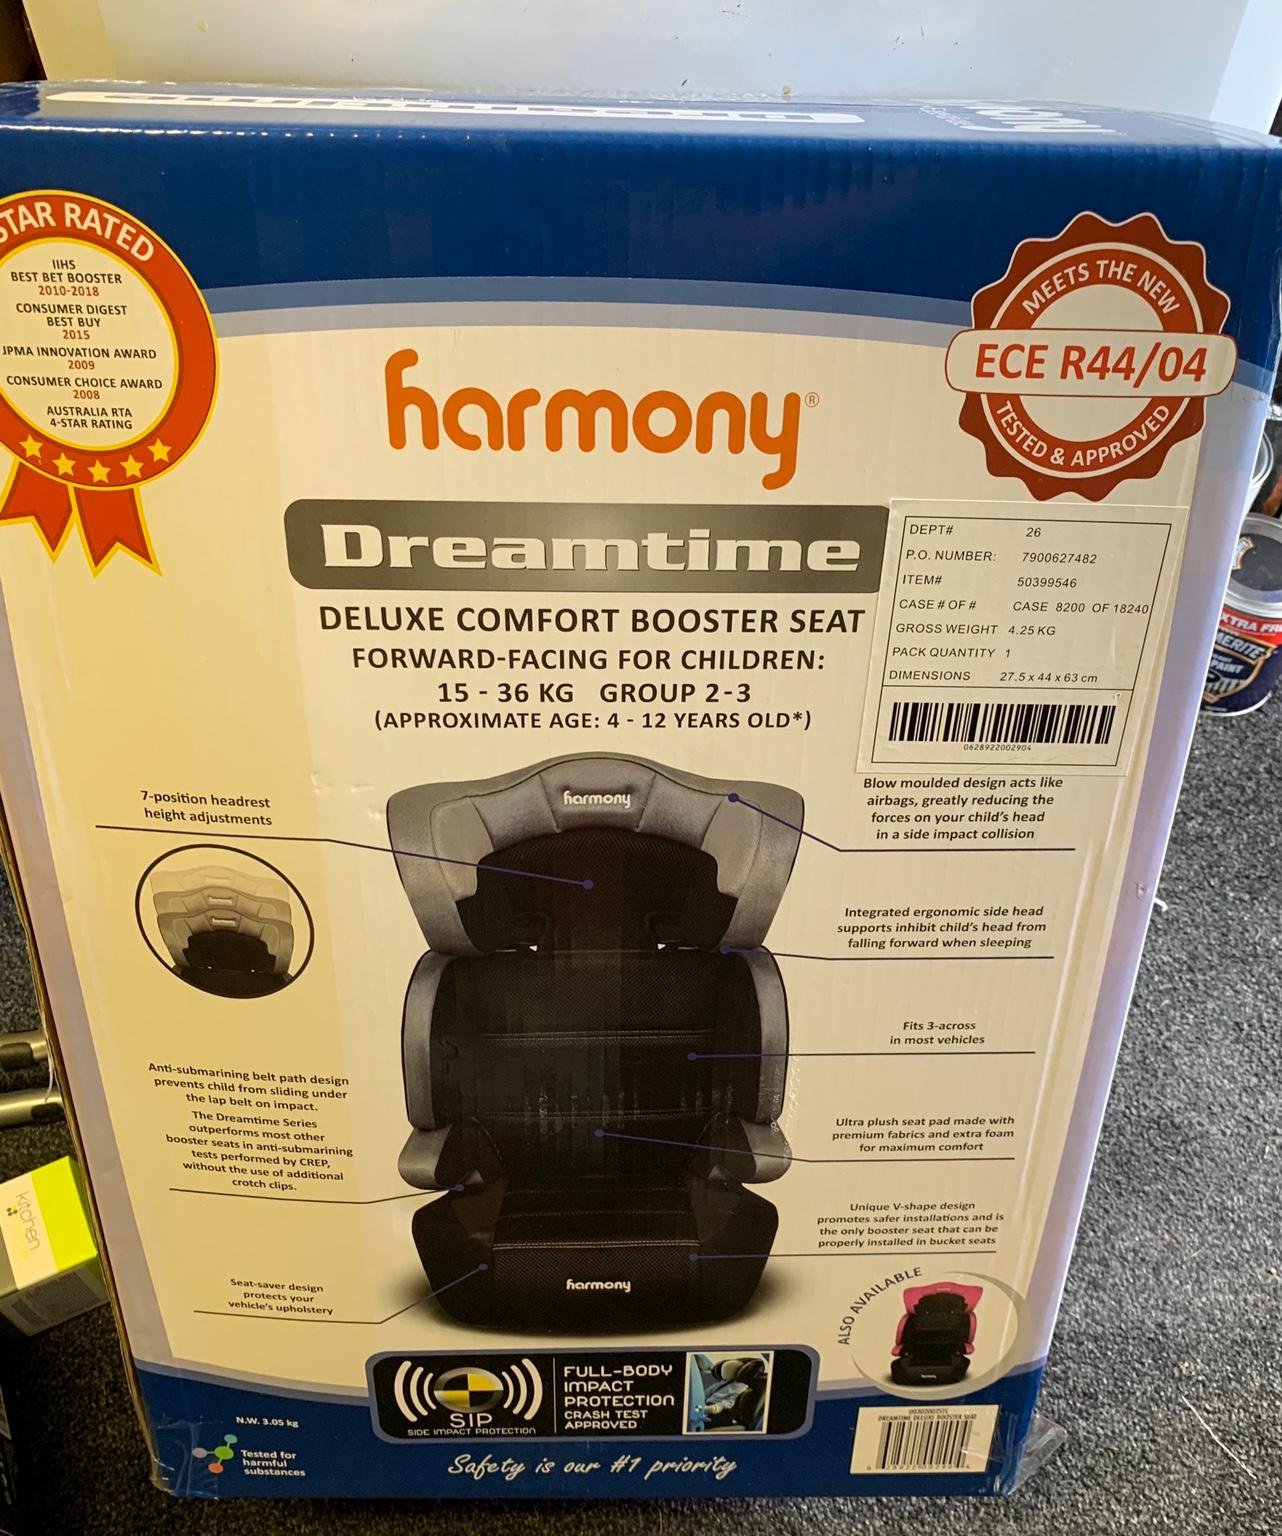 Harmony Dreamtime deluxe comfort booster seat